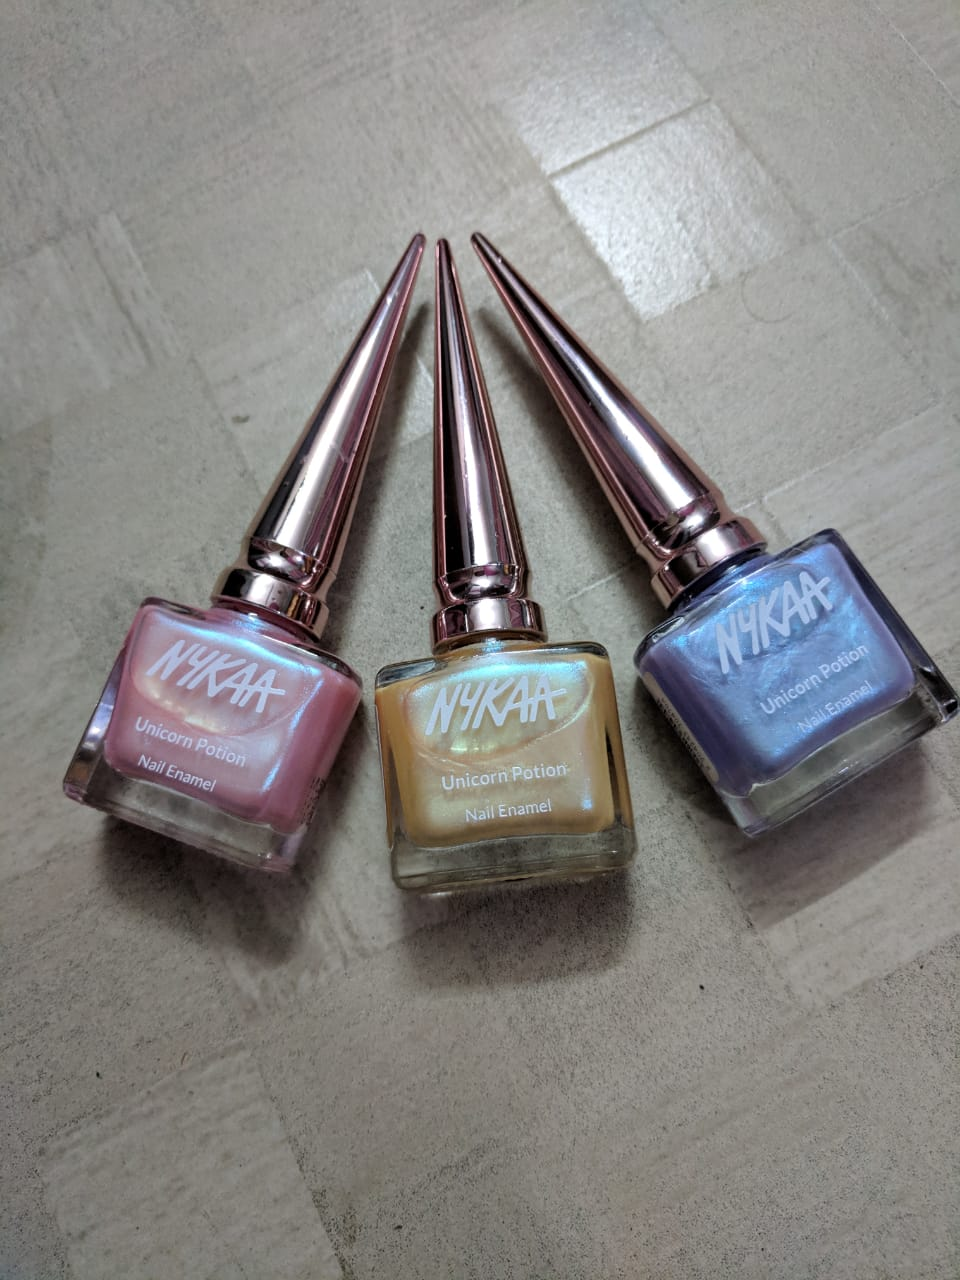 Nykaa Unicorn Potion Nail Enamel Review & Swatches  Frosted fairy, Sugar n spice, Pink peony